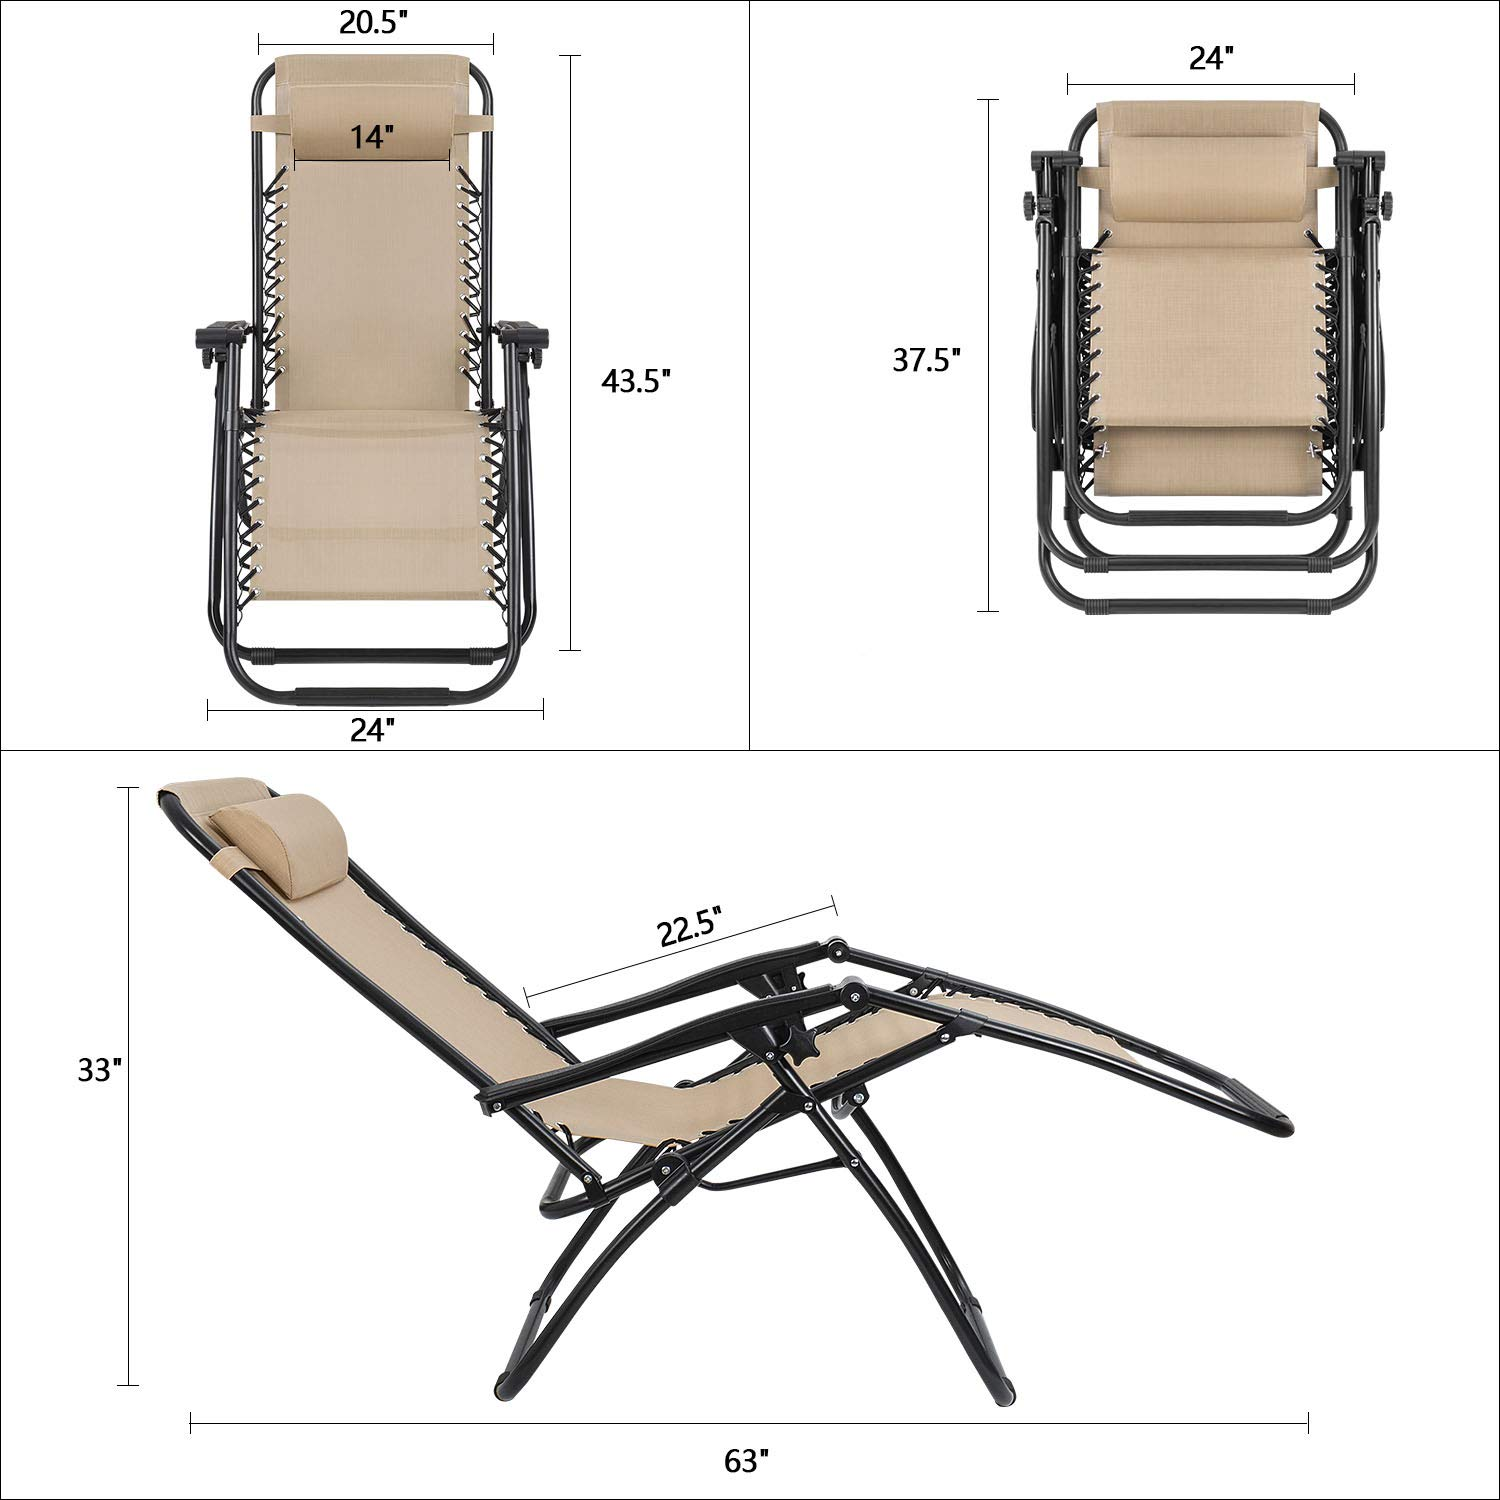 Devoko Patio Zero Gravity Chair Outdoor Folding Adjustable Reclining Chairs Pool Side Using Lawn Lounge Chair with Pillow Set of 2 (Beige) by Devoko (Image #6)